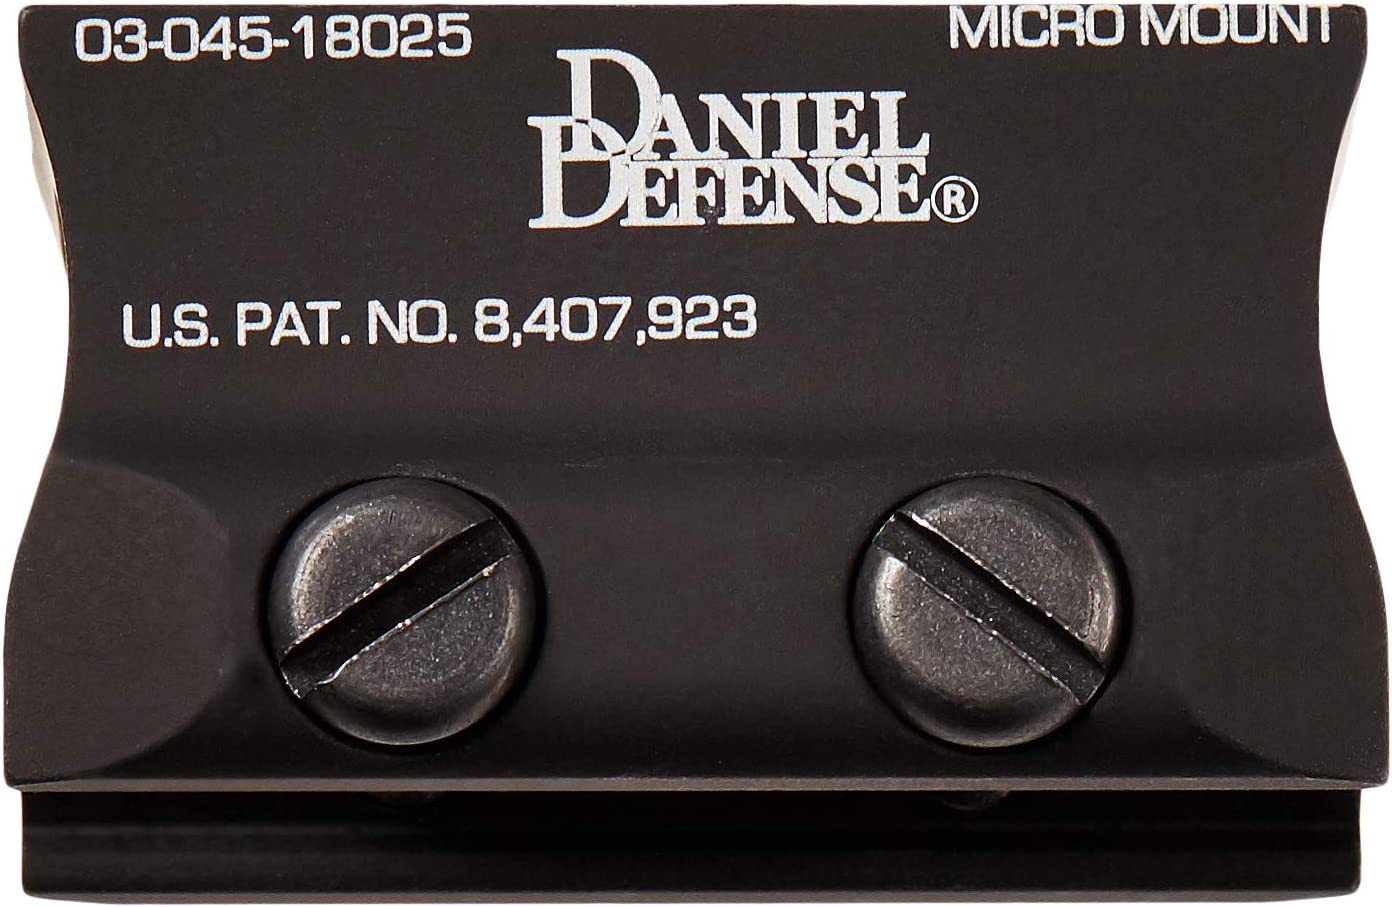 Recommended Max 69% OFF Daniel Defense Aimpoint Micro Mount w - b 03-045-18025 Spacer